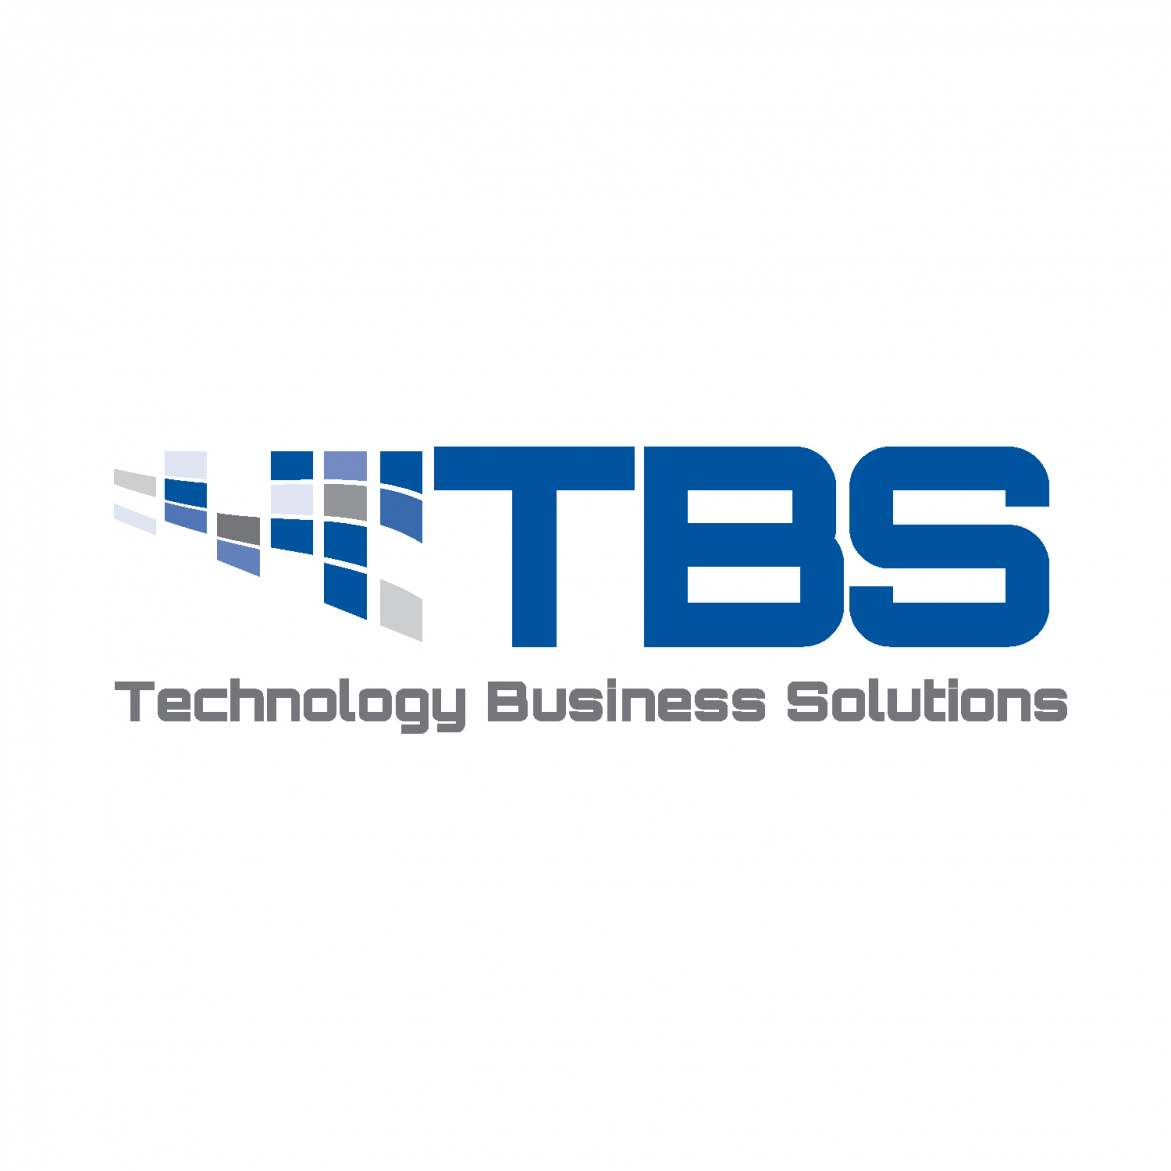 Technology Business Solutions Logo